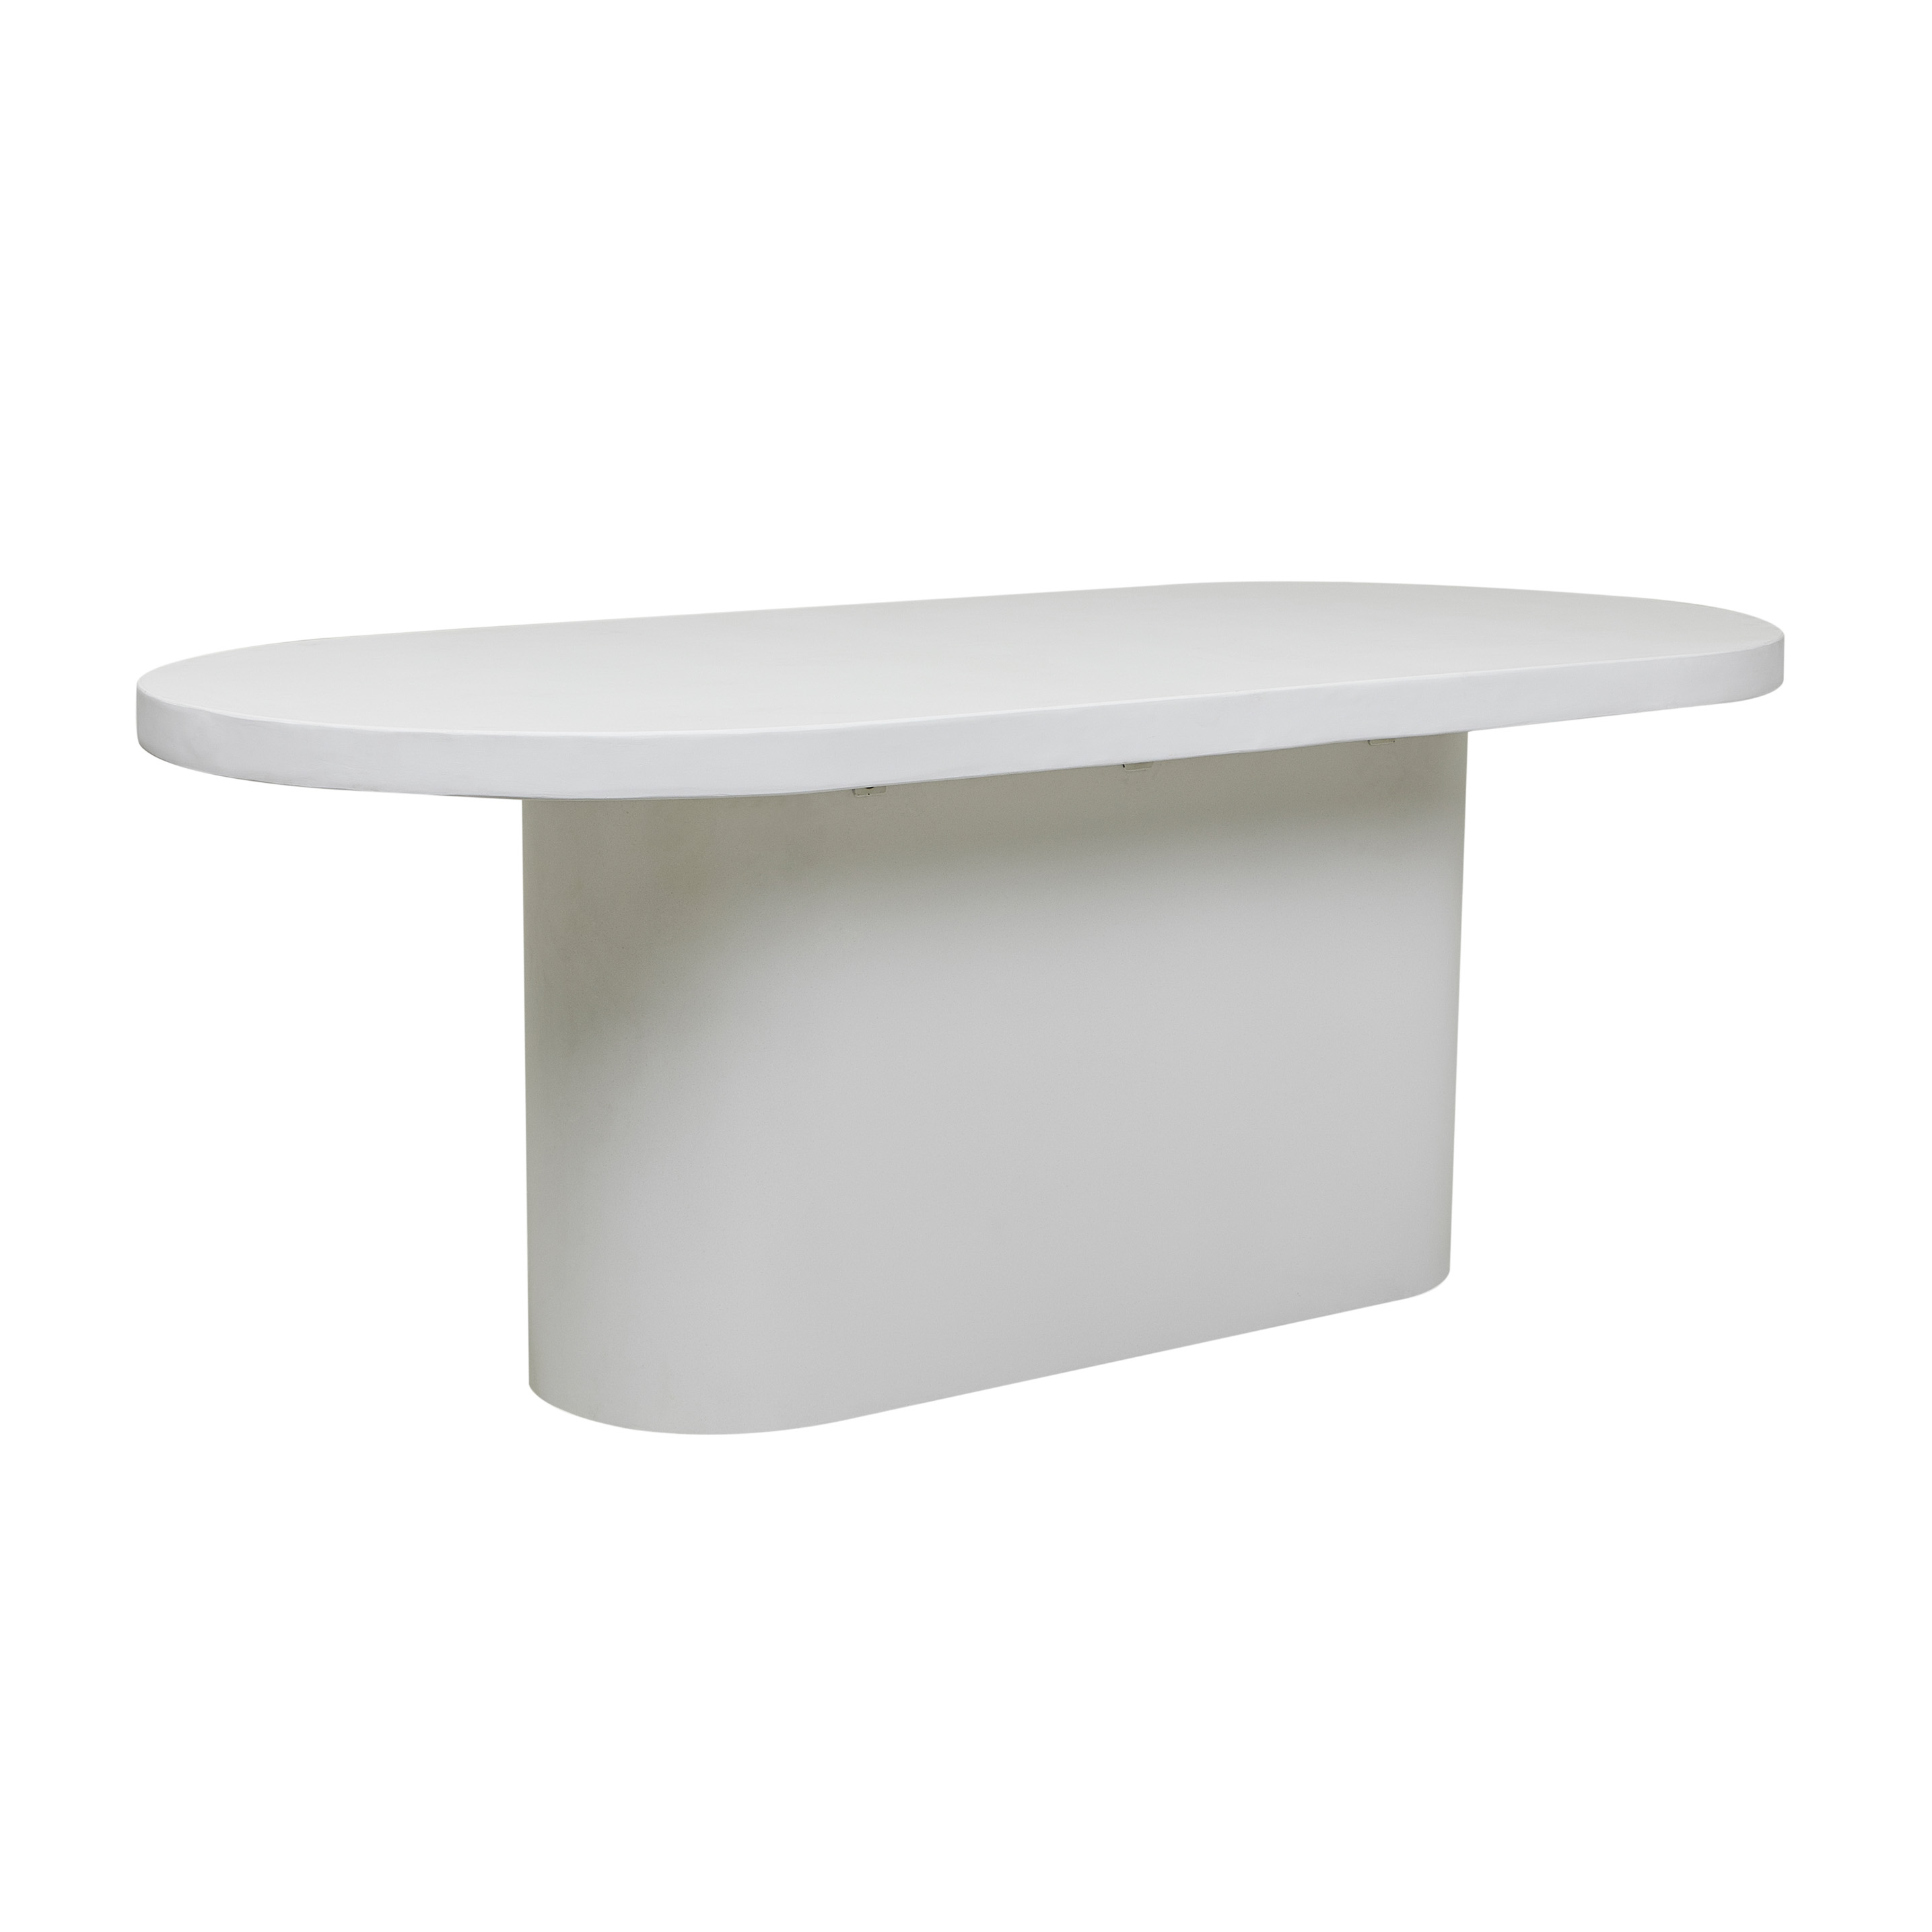 Furniture Hero-Images Dining-Tables ossa-concrete-oval-01